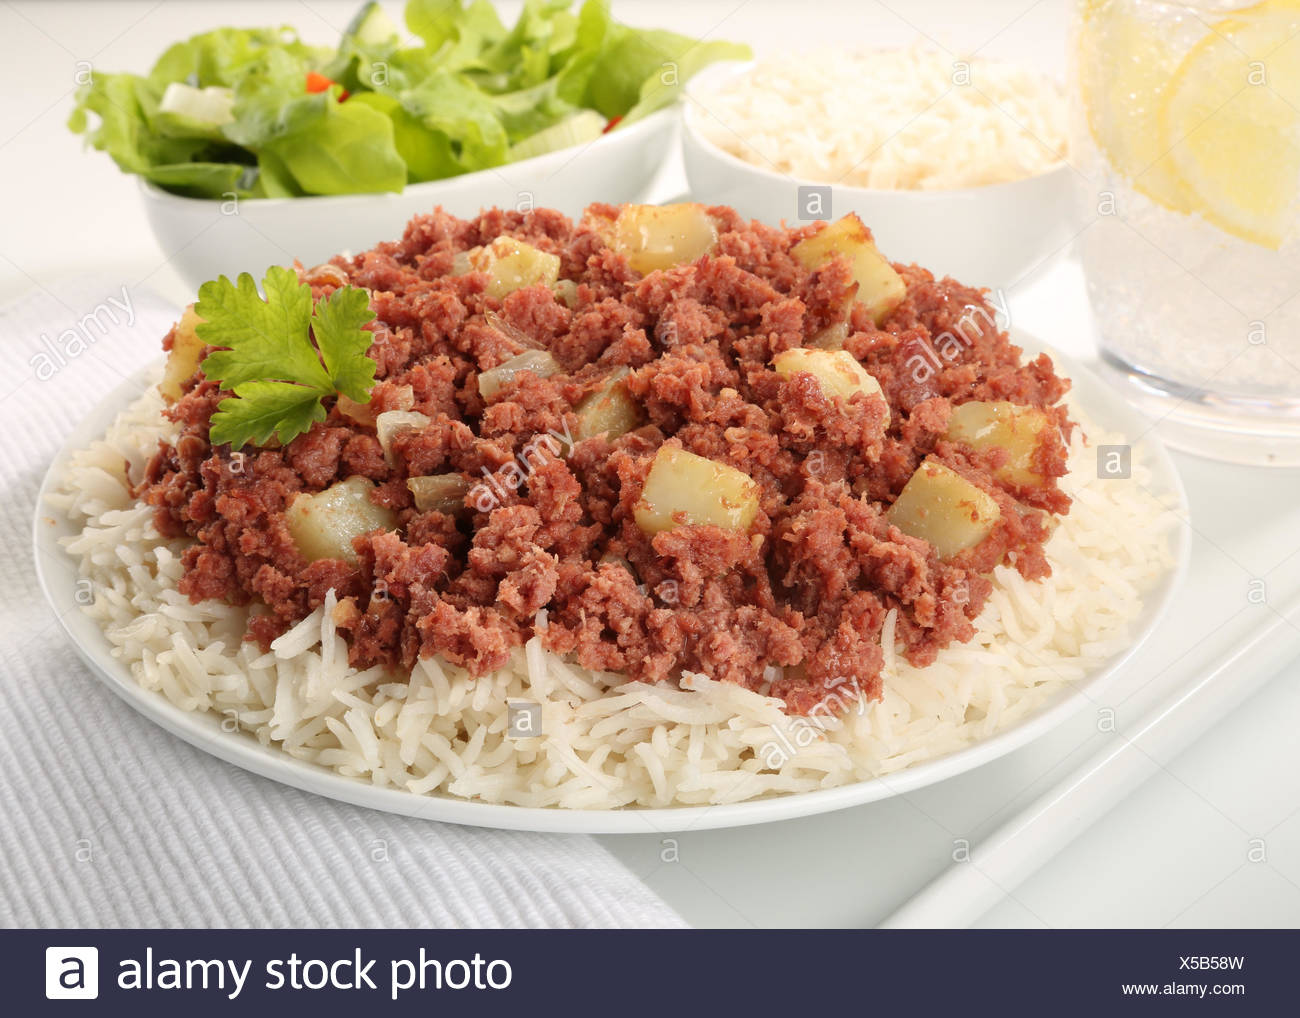 CLASSIC TRADITIONAL CORNED BEEF HASH RECIPE - Stock Image